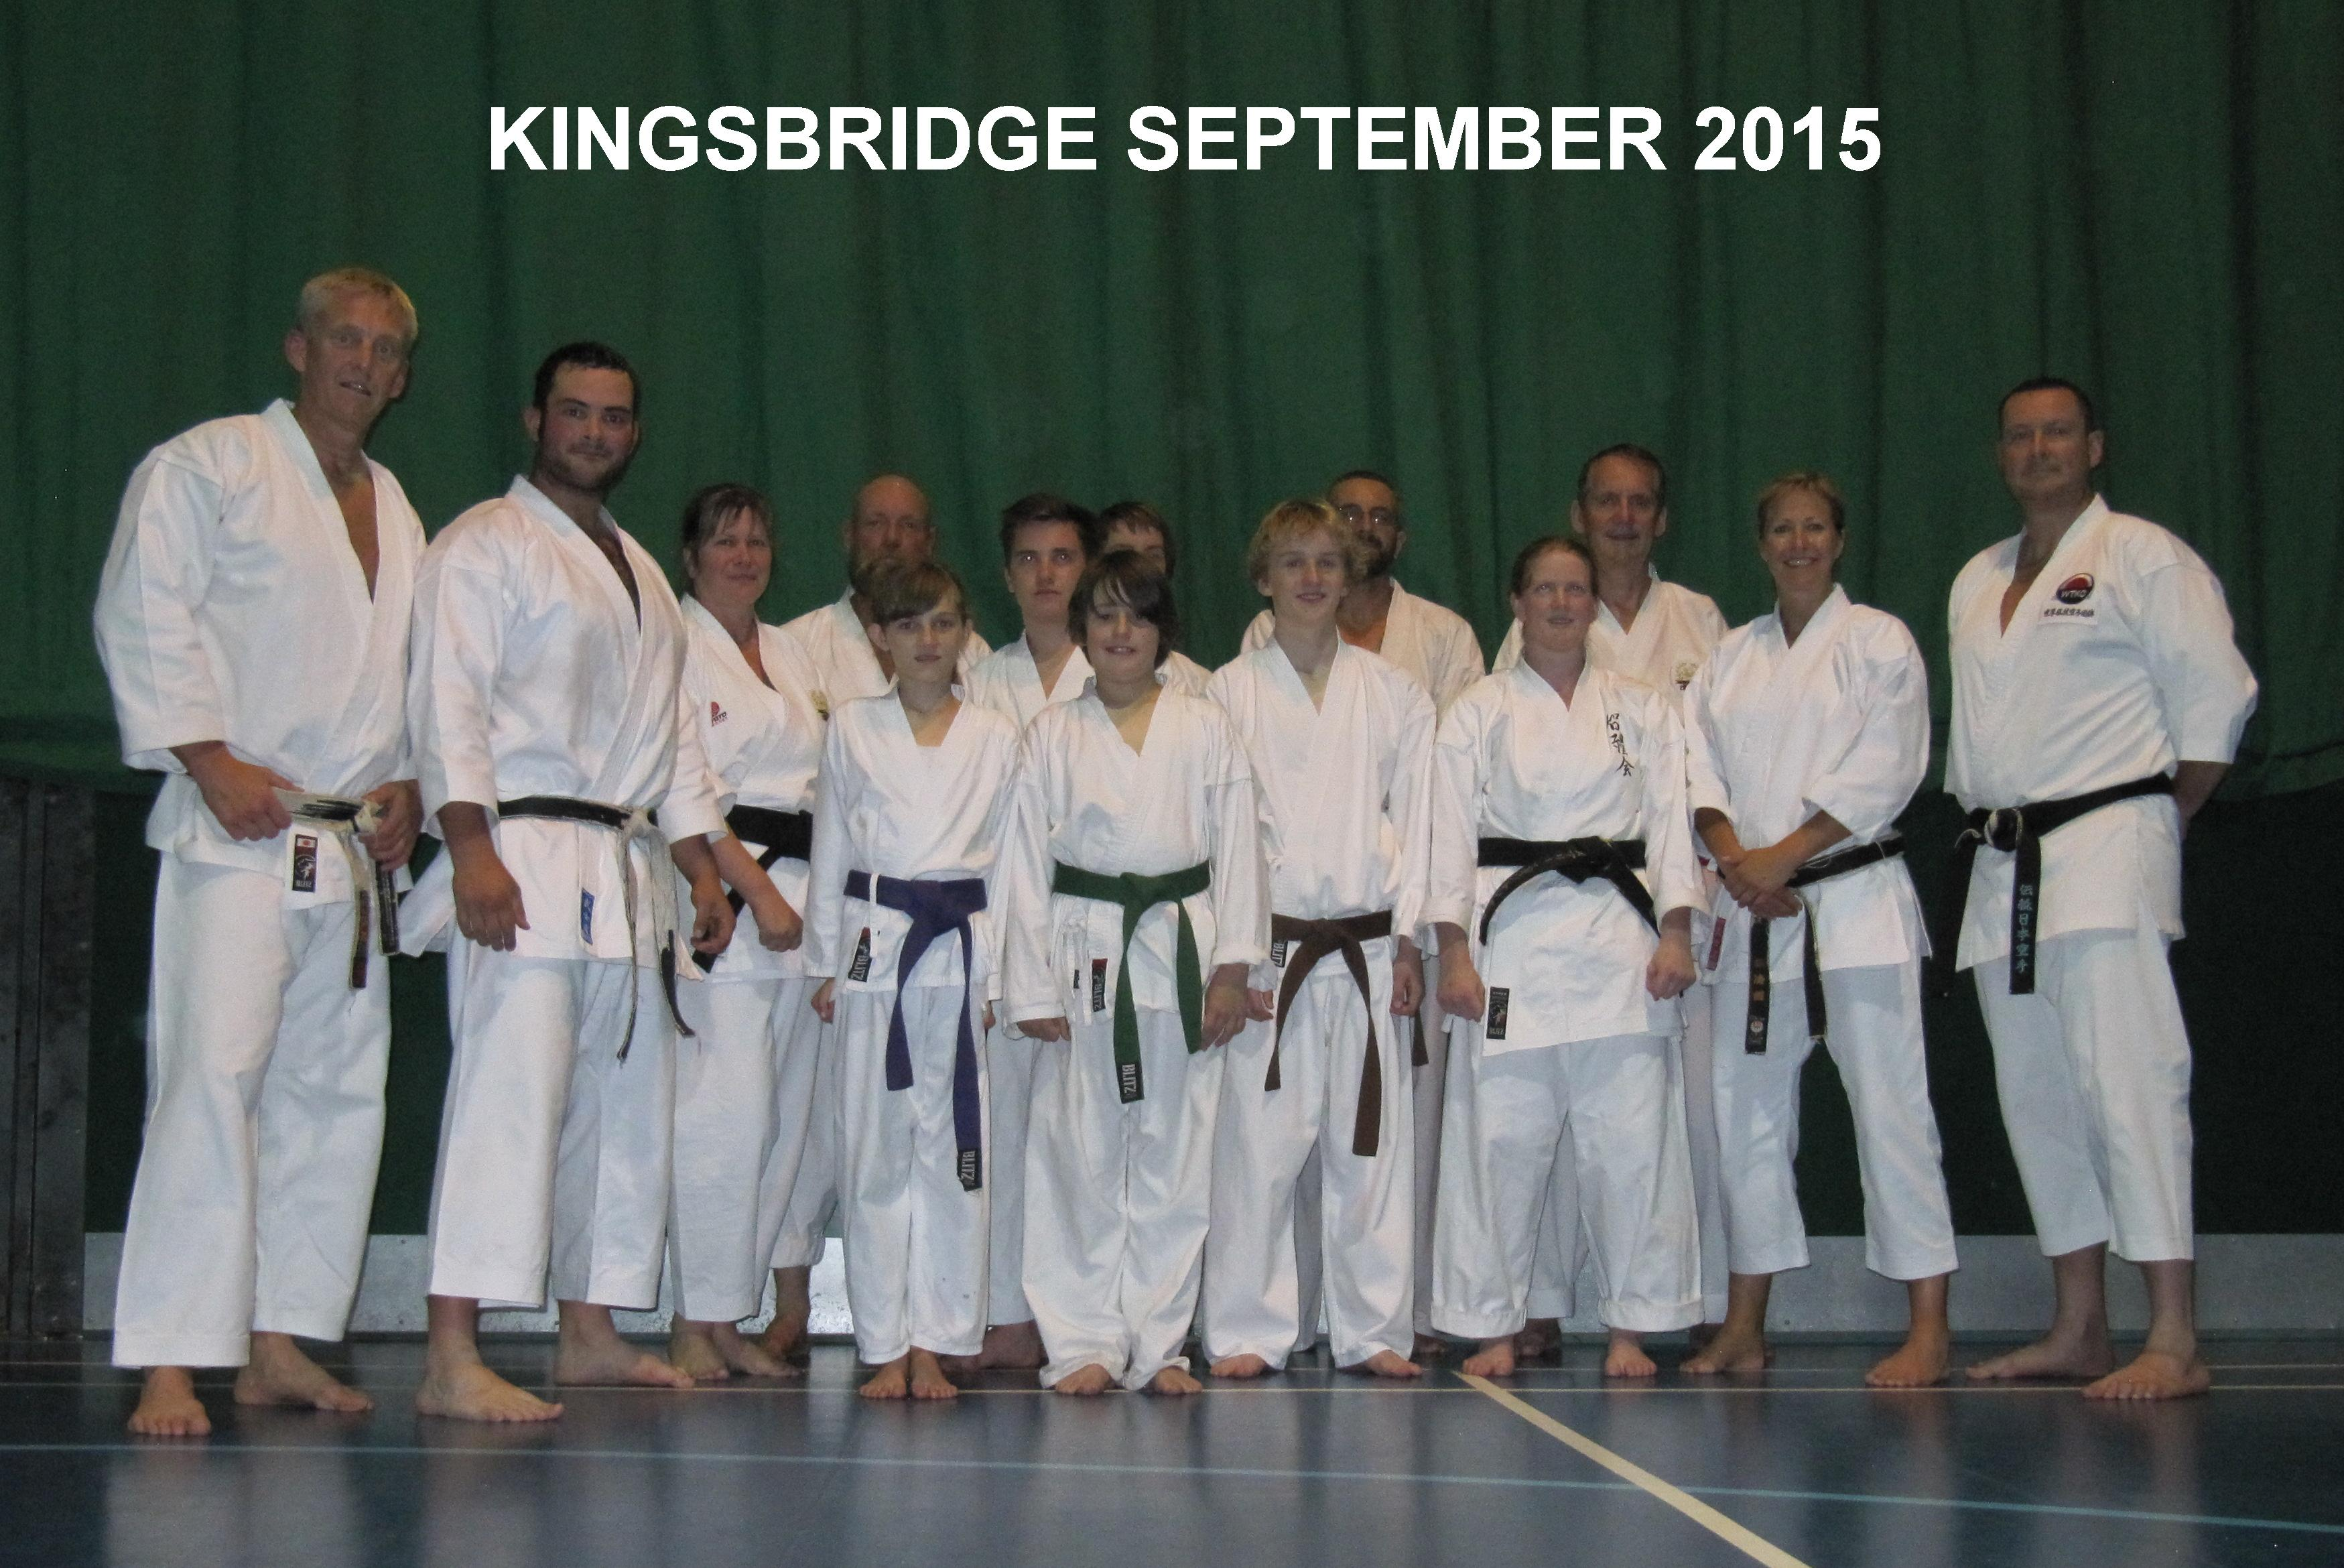 KINGSBRIDGES SEPTEMBER 2015